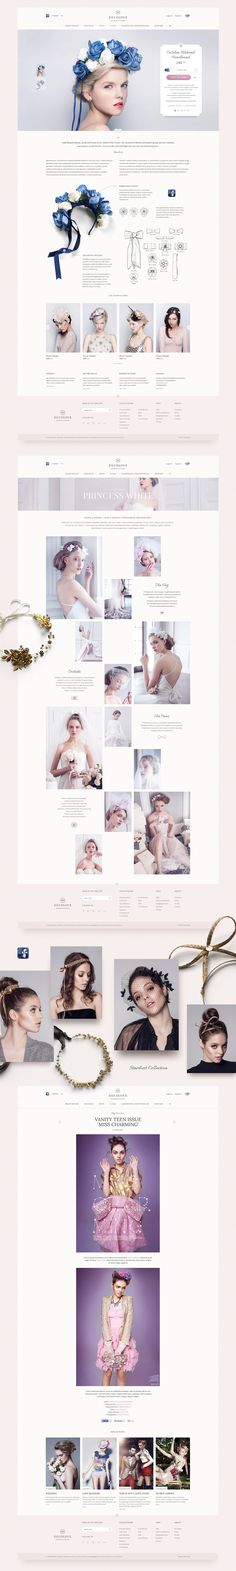 Agency: GoBOLDDesign Timeline: May 2014Full Responsive e-commerce shop for DECOLOVE.DECOLOVE Atelier is a place where from several years we create a unique fashion accessories for women and men, often personalized for individual needs and tastes. W…